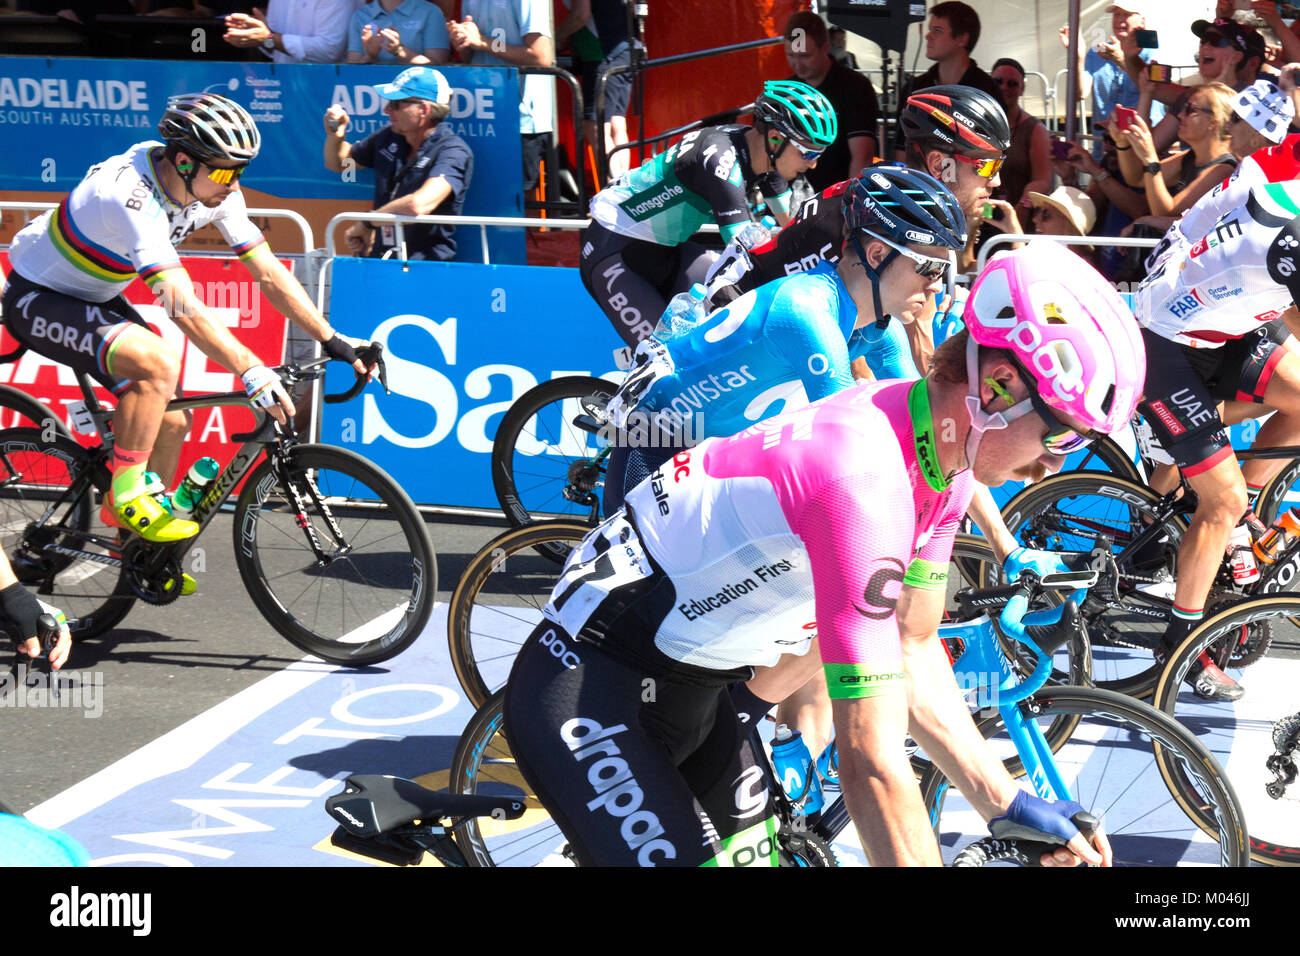 Adelaide Australia. 19th Jan, 2018. Riders starting stage 4 of the 2018 Tour Down Under in Adelaide Australia. The - Stock Image